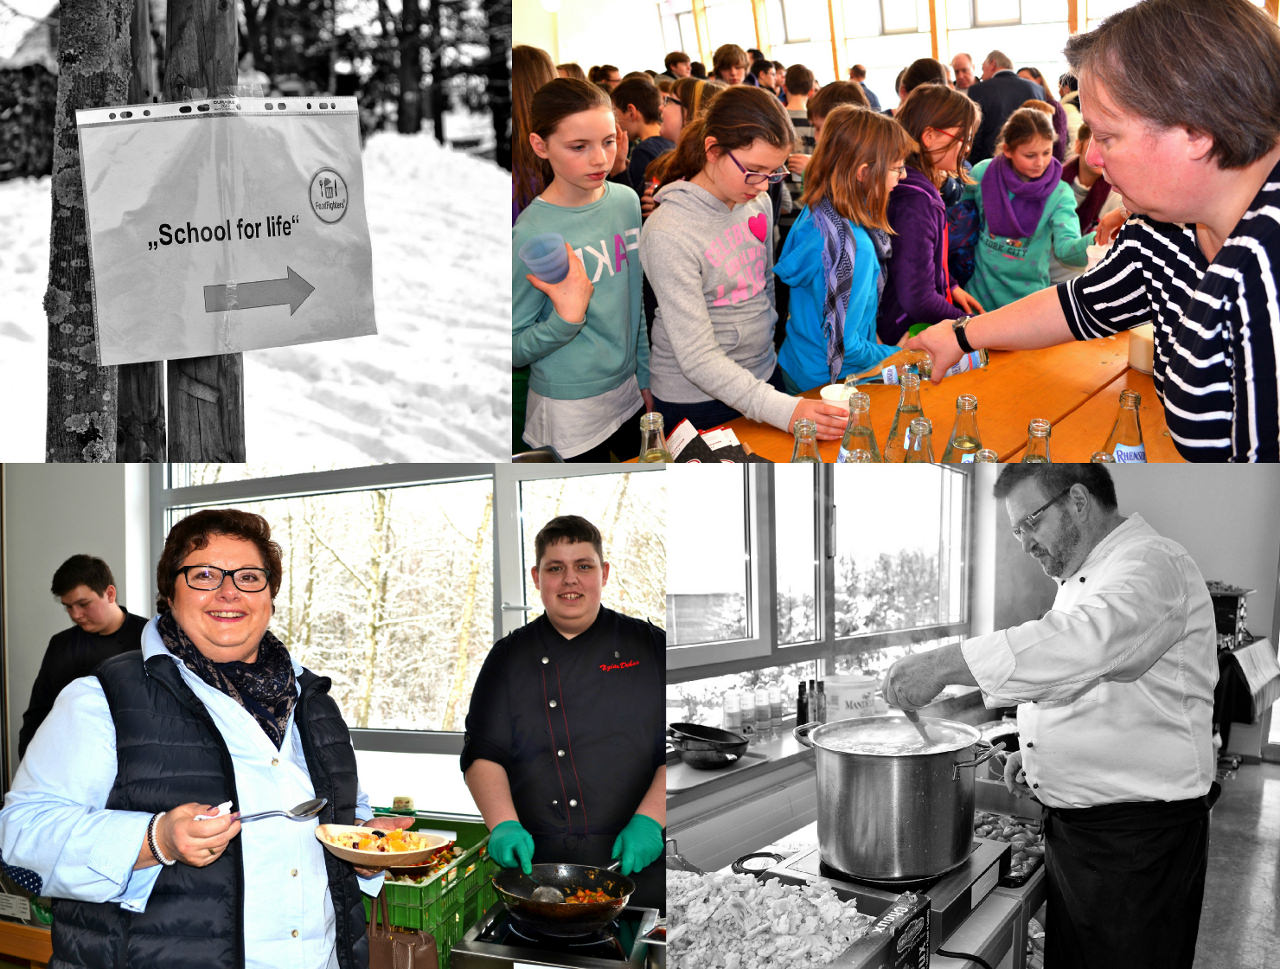 FoodFighters-Aktion School For Life in Emmelshausen.